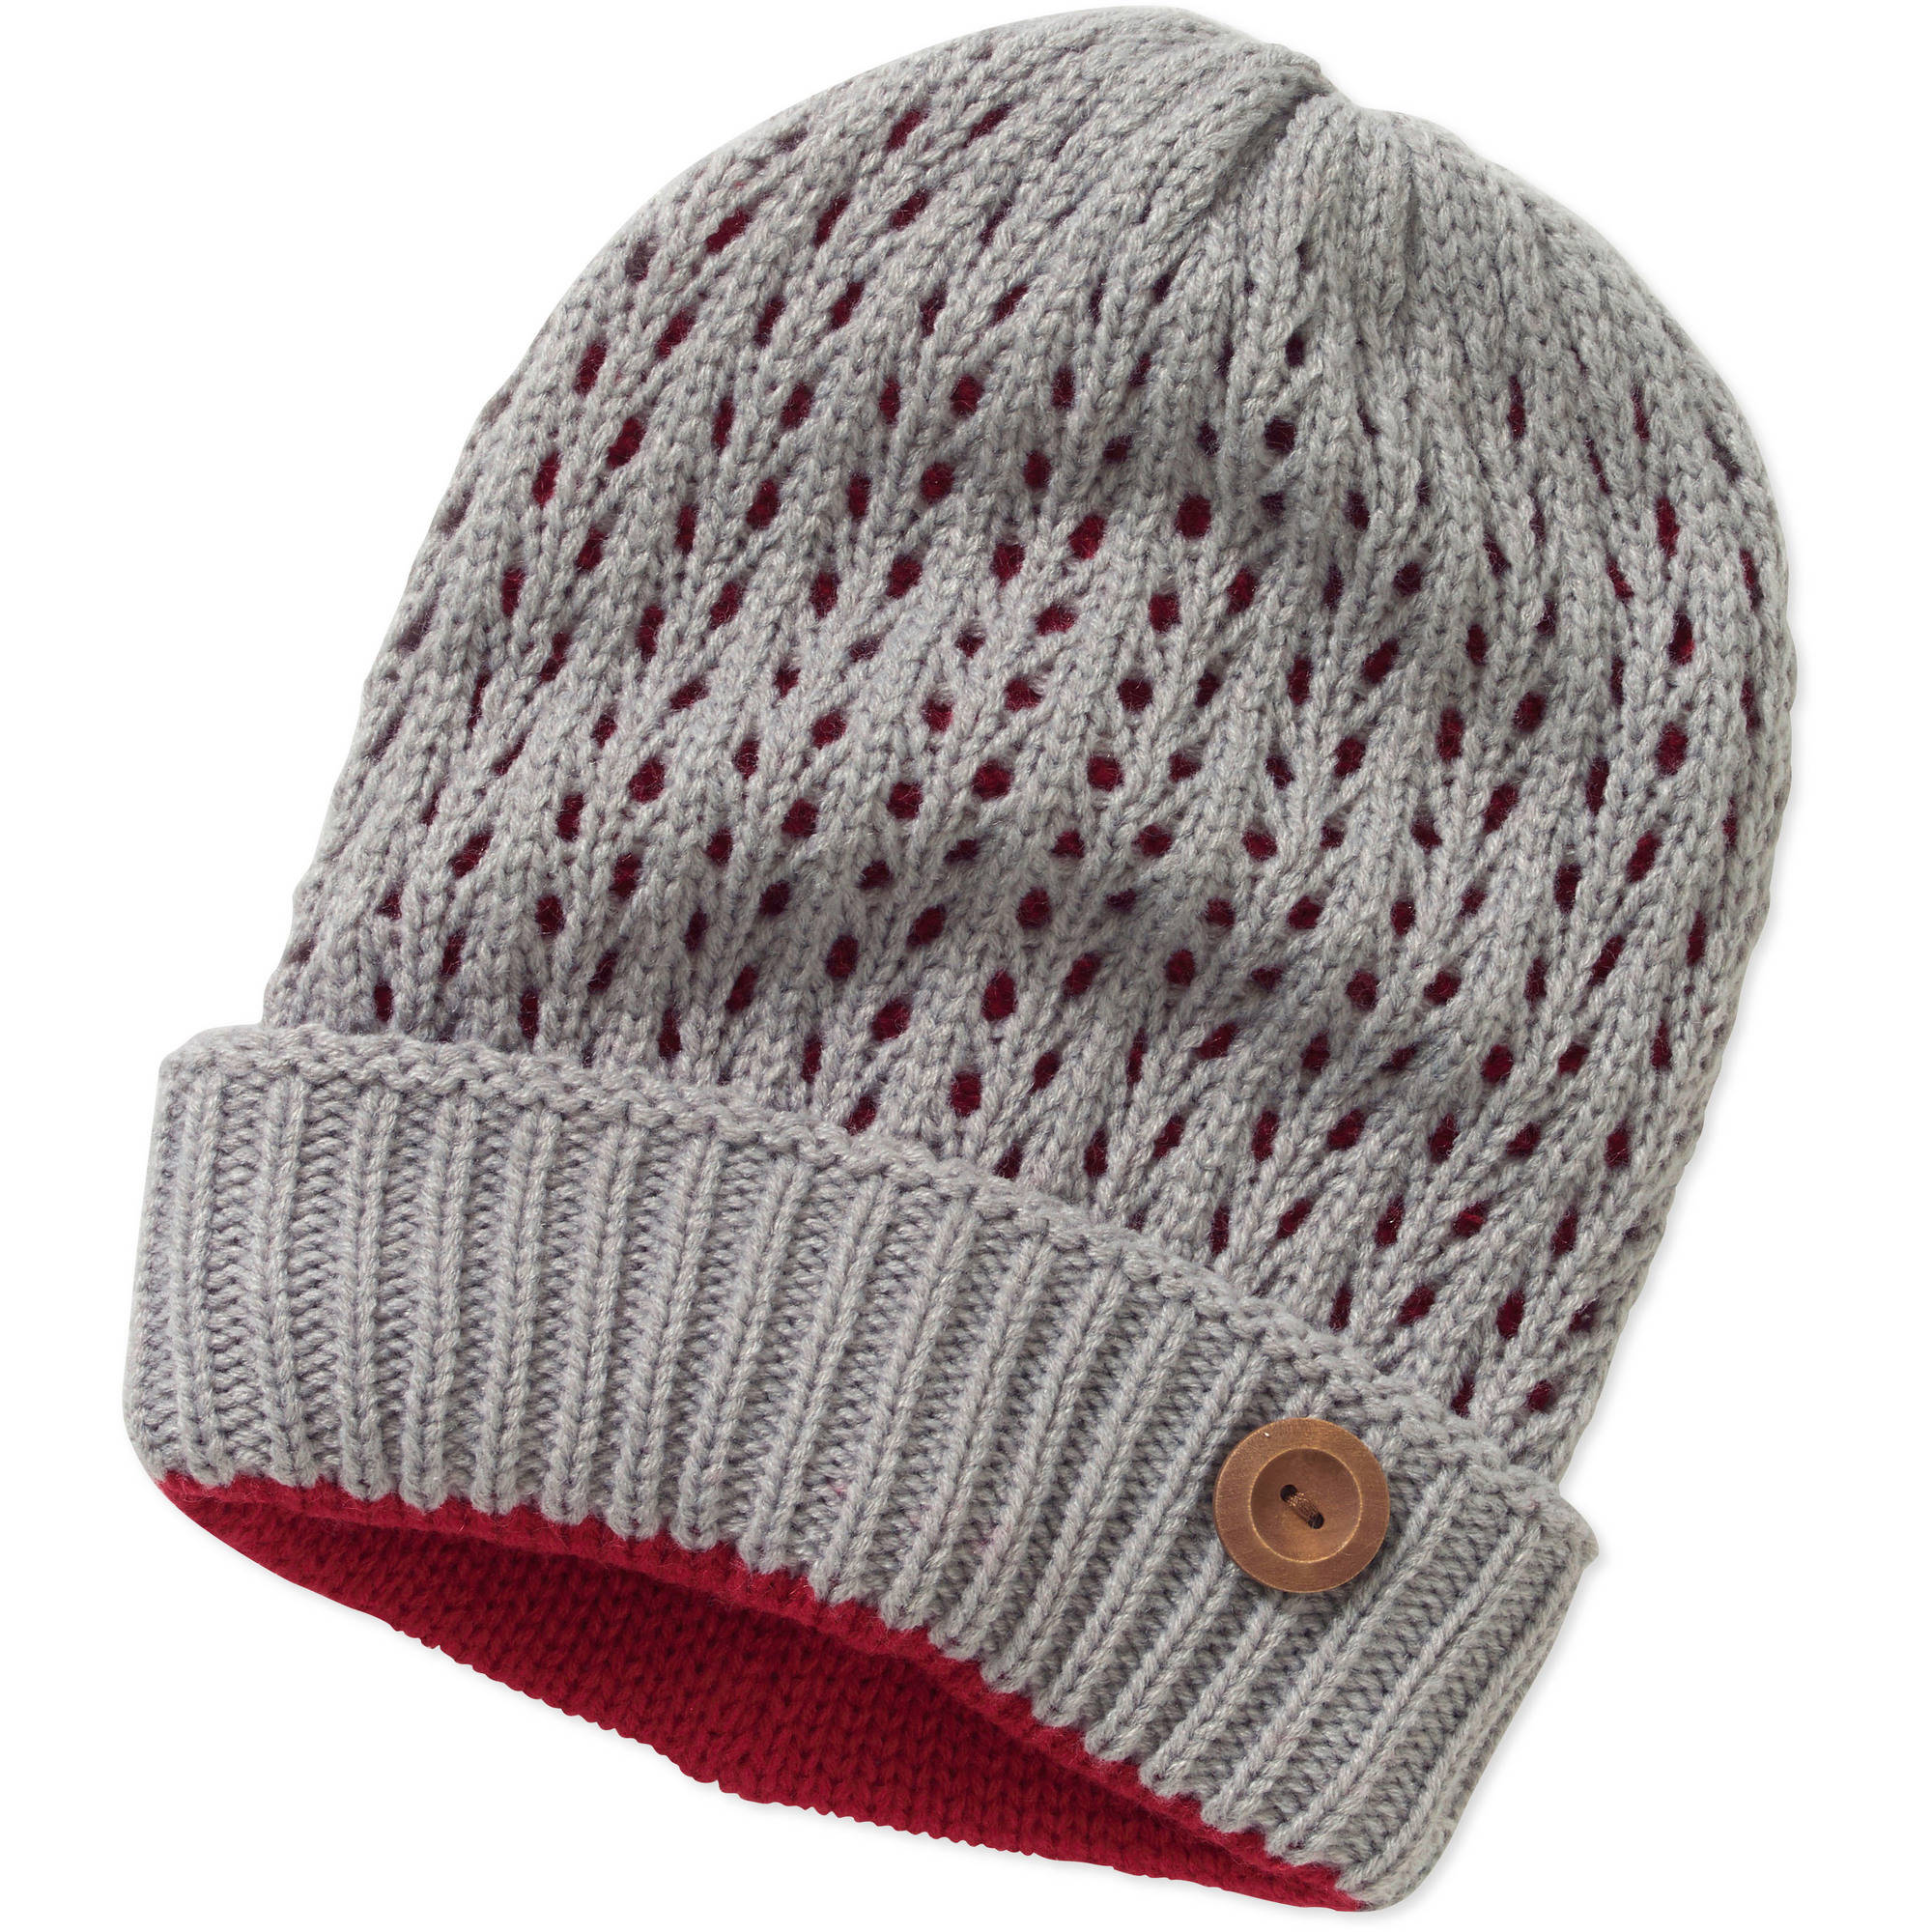 Cold Front Women's Cuff Beanie Hat with Button